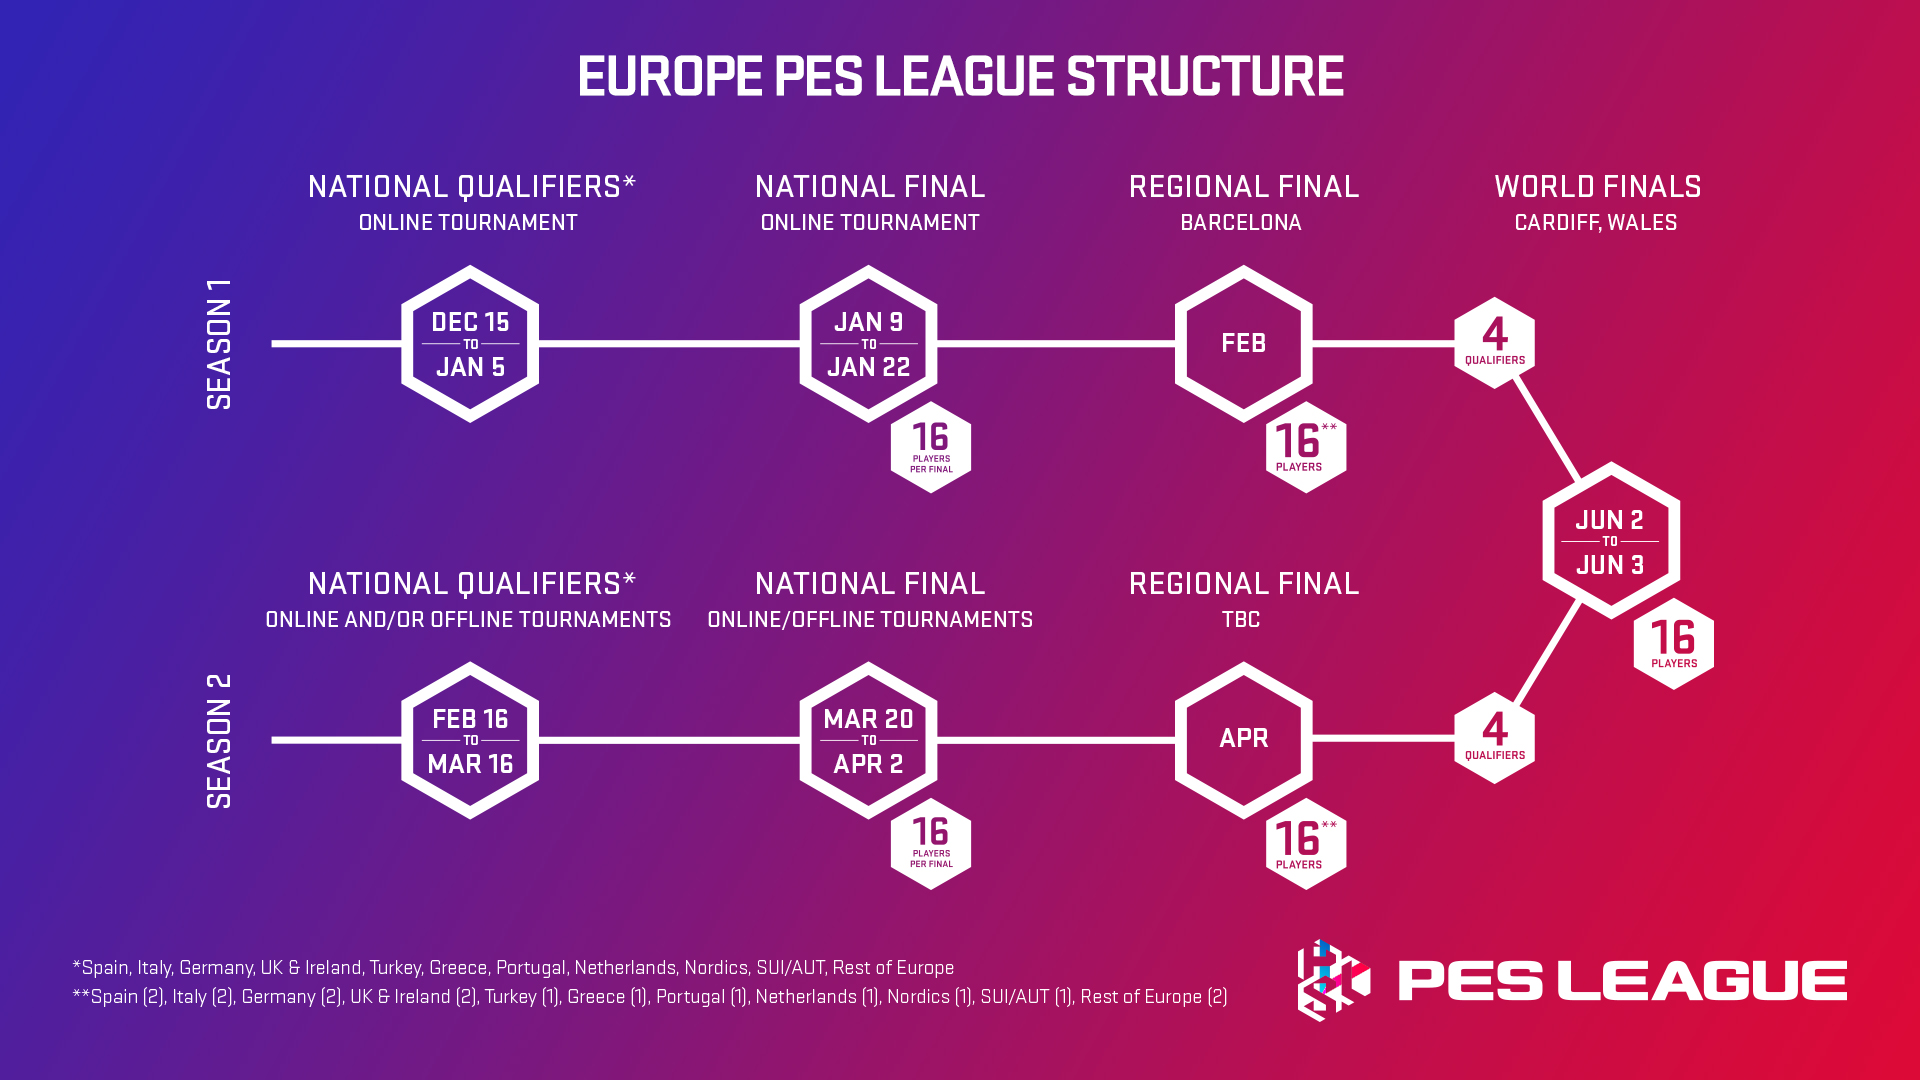 PES LEAGUE_Europe_structure